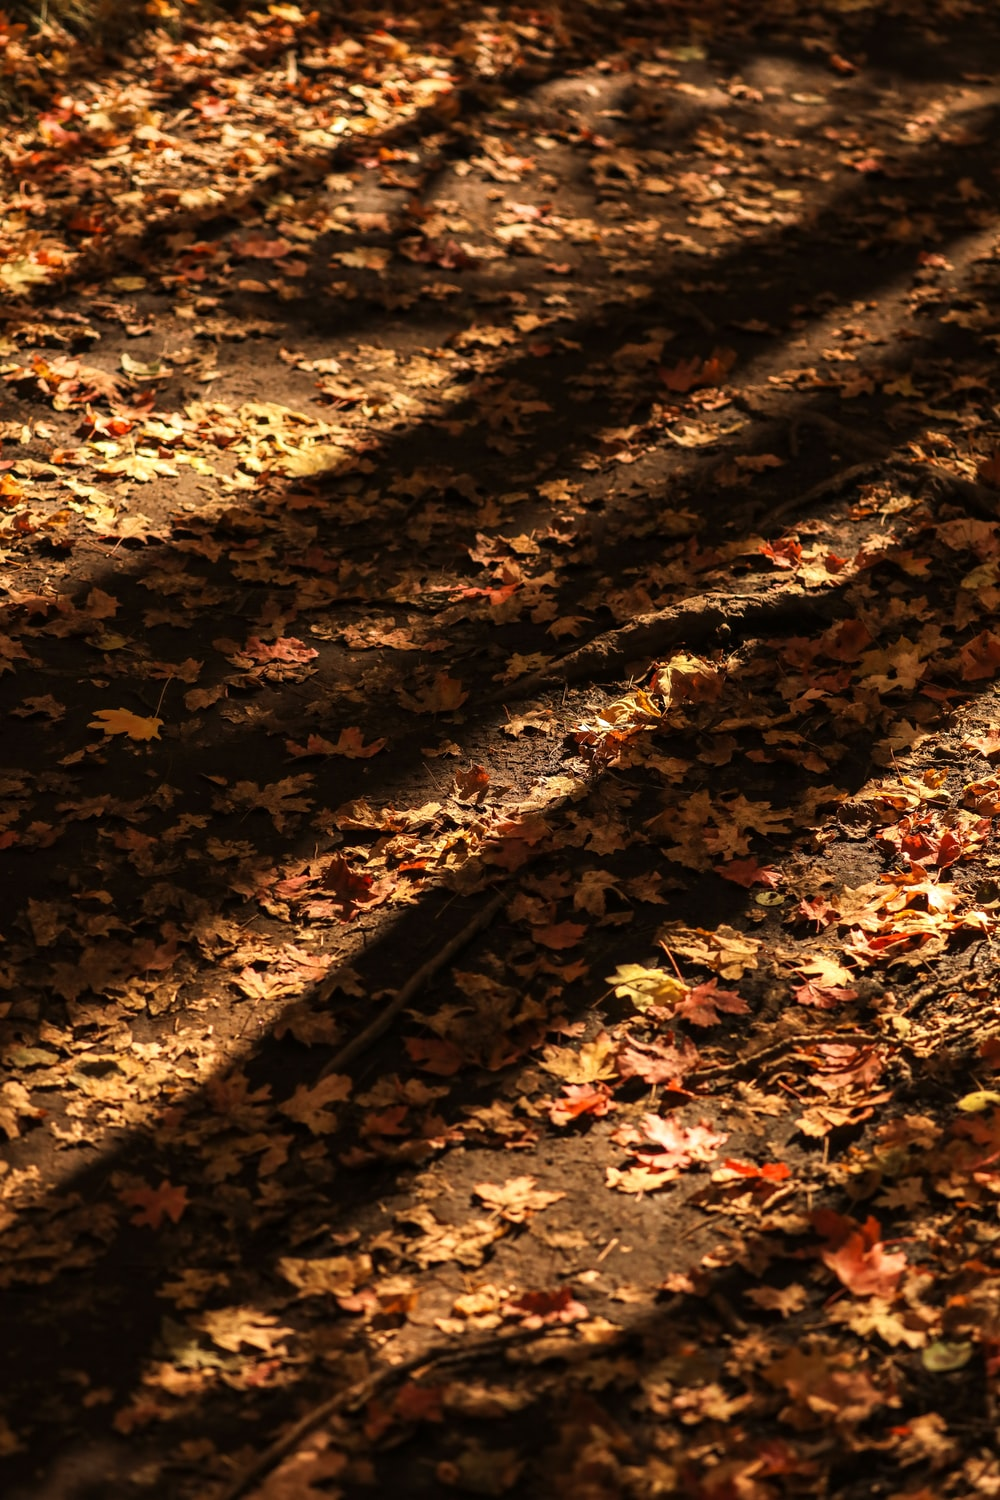 photo of dried leaves on soil